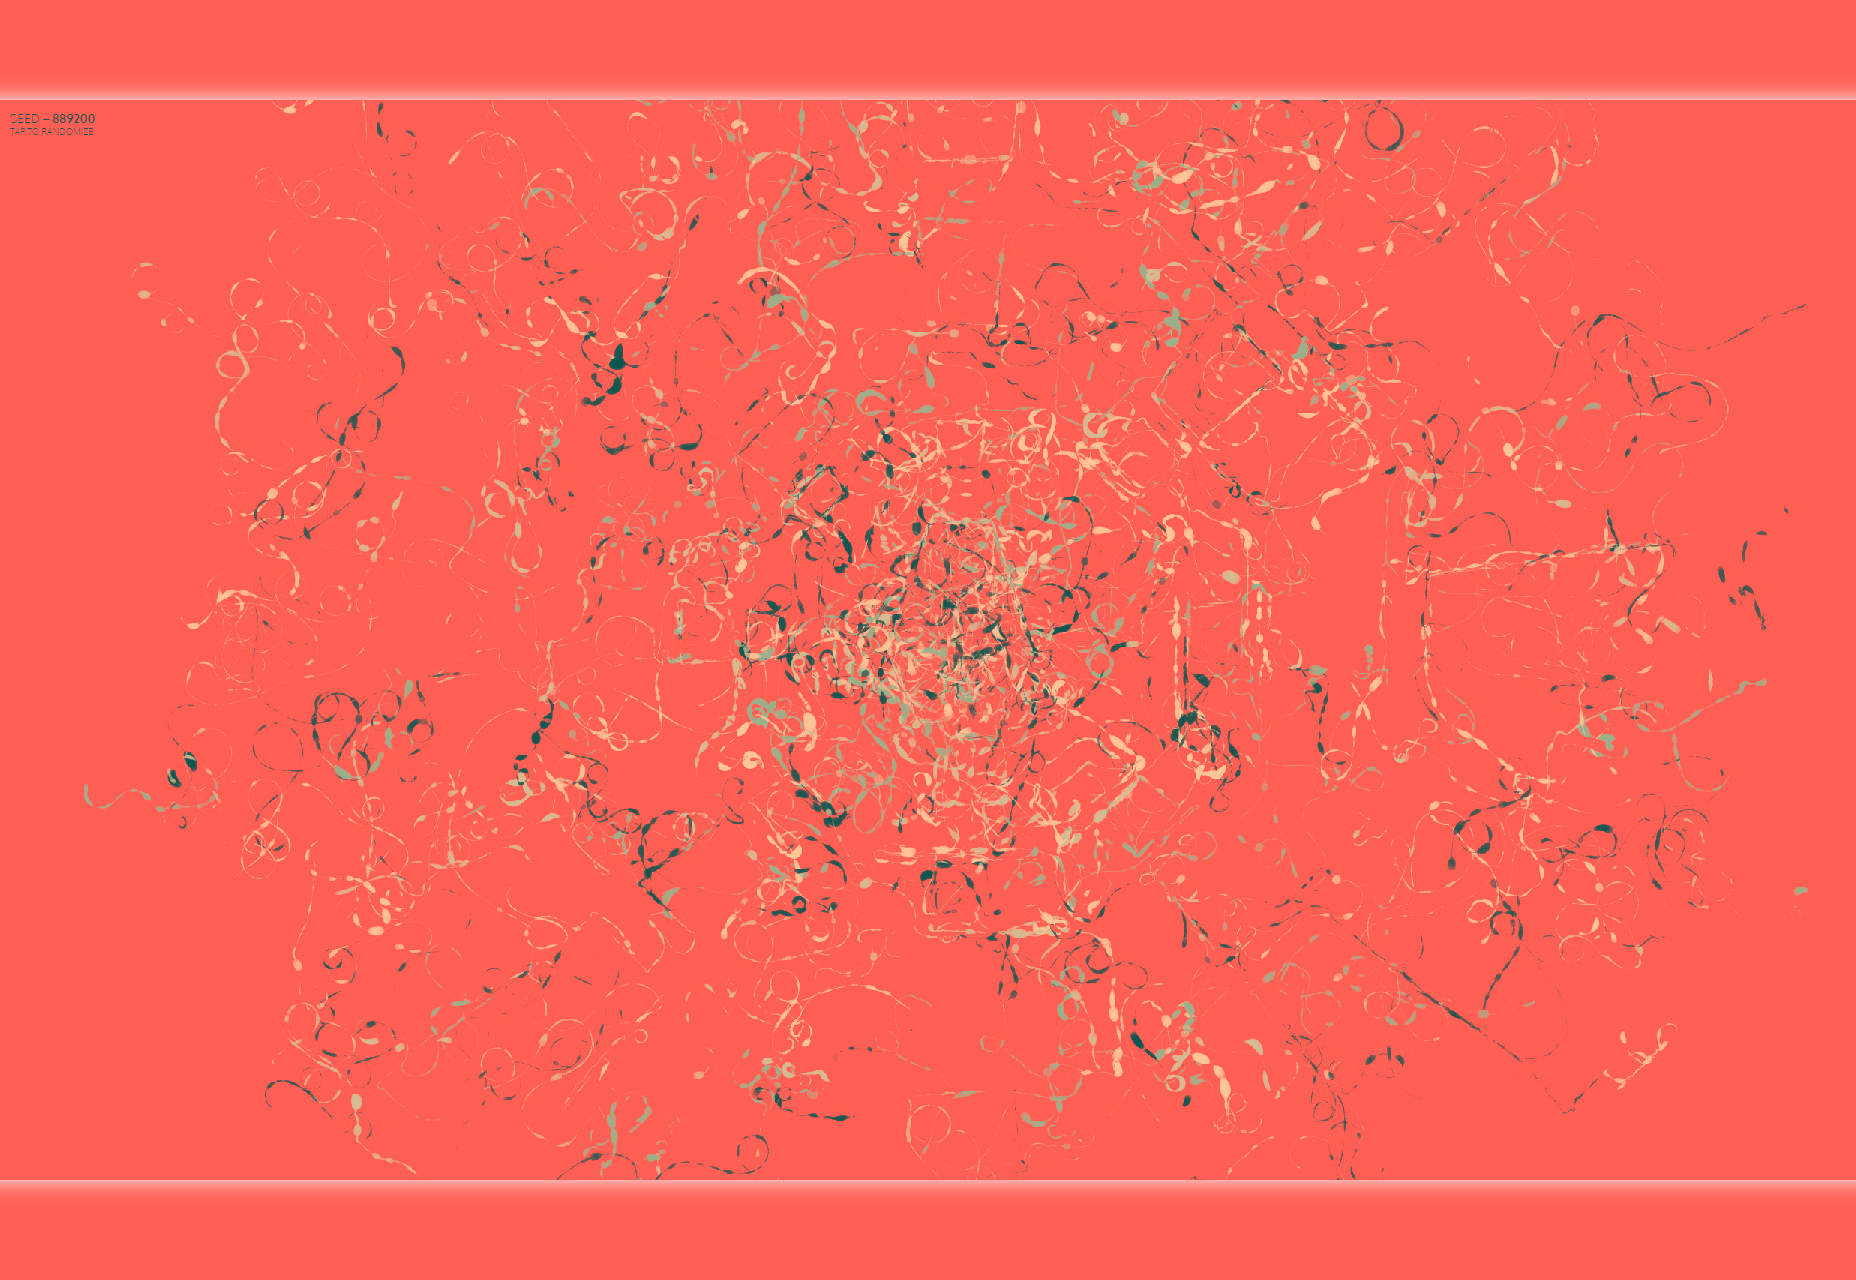 Color-wander: Seeded Tilfeldig Basert Generative Artwork i Node / Browser